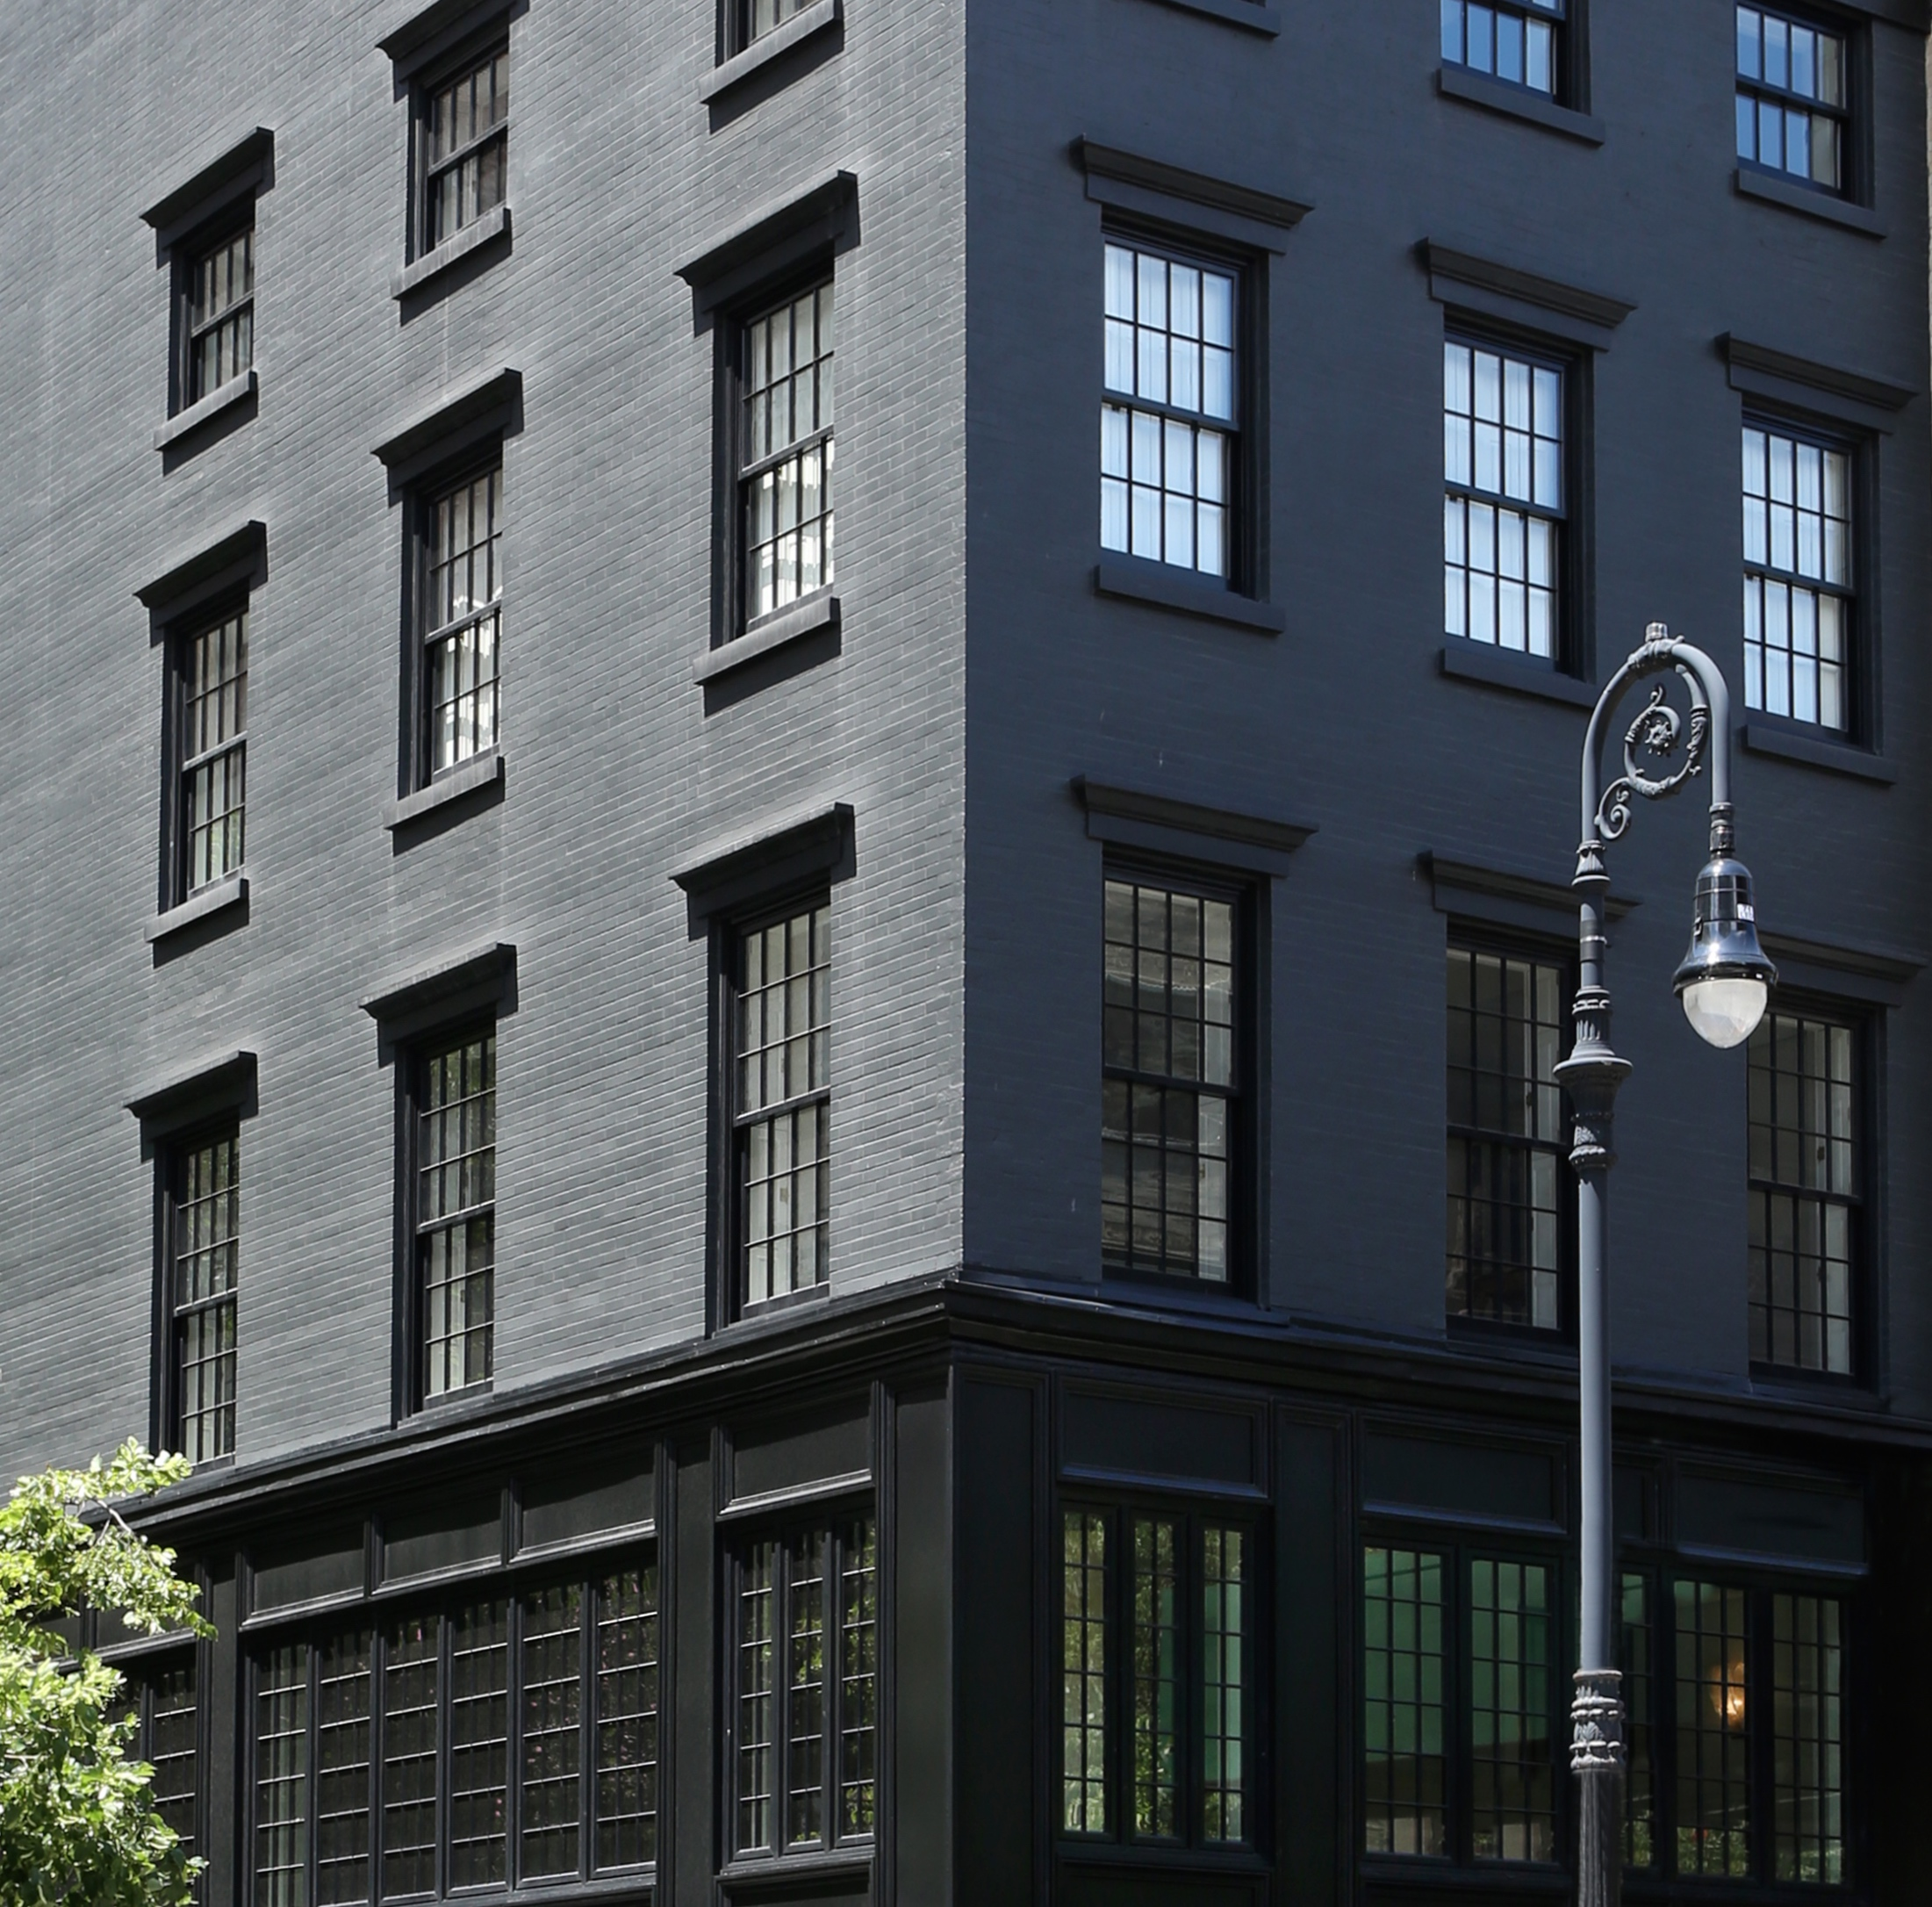 Single Family Home for Sale at 65 Irving Place 65 Irving Place New York, New York 10003 United States